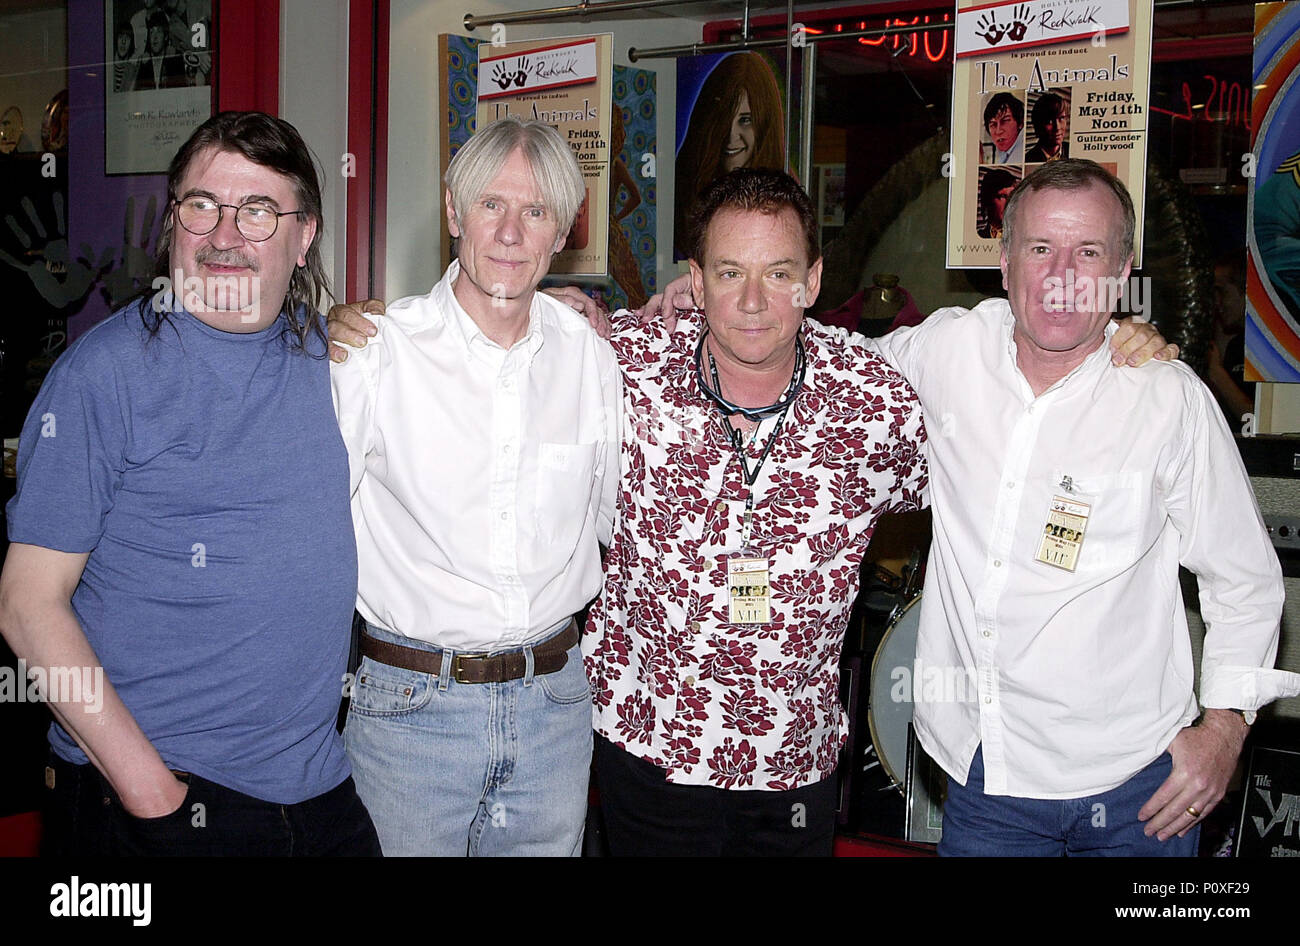 e28e747f0 Members of the legendary '60s British group The British pose together after  being inducted into